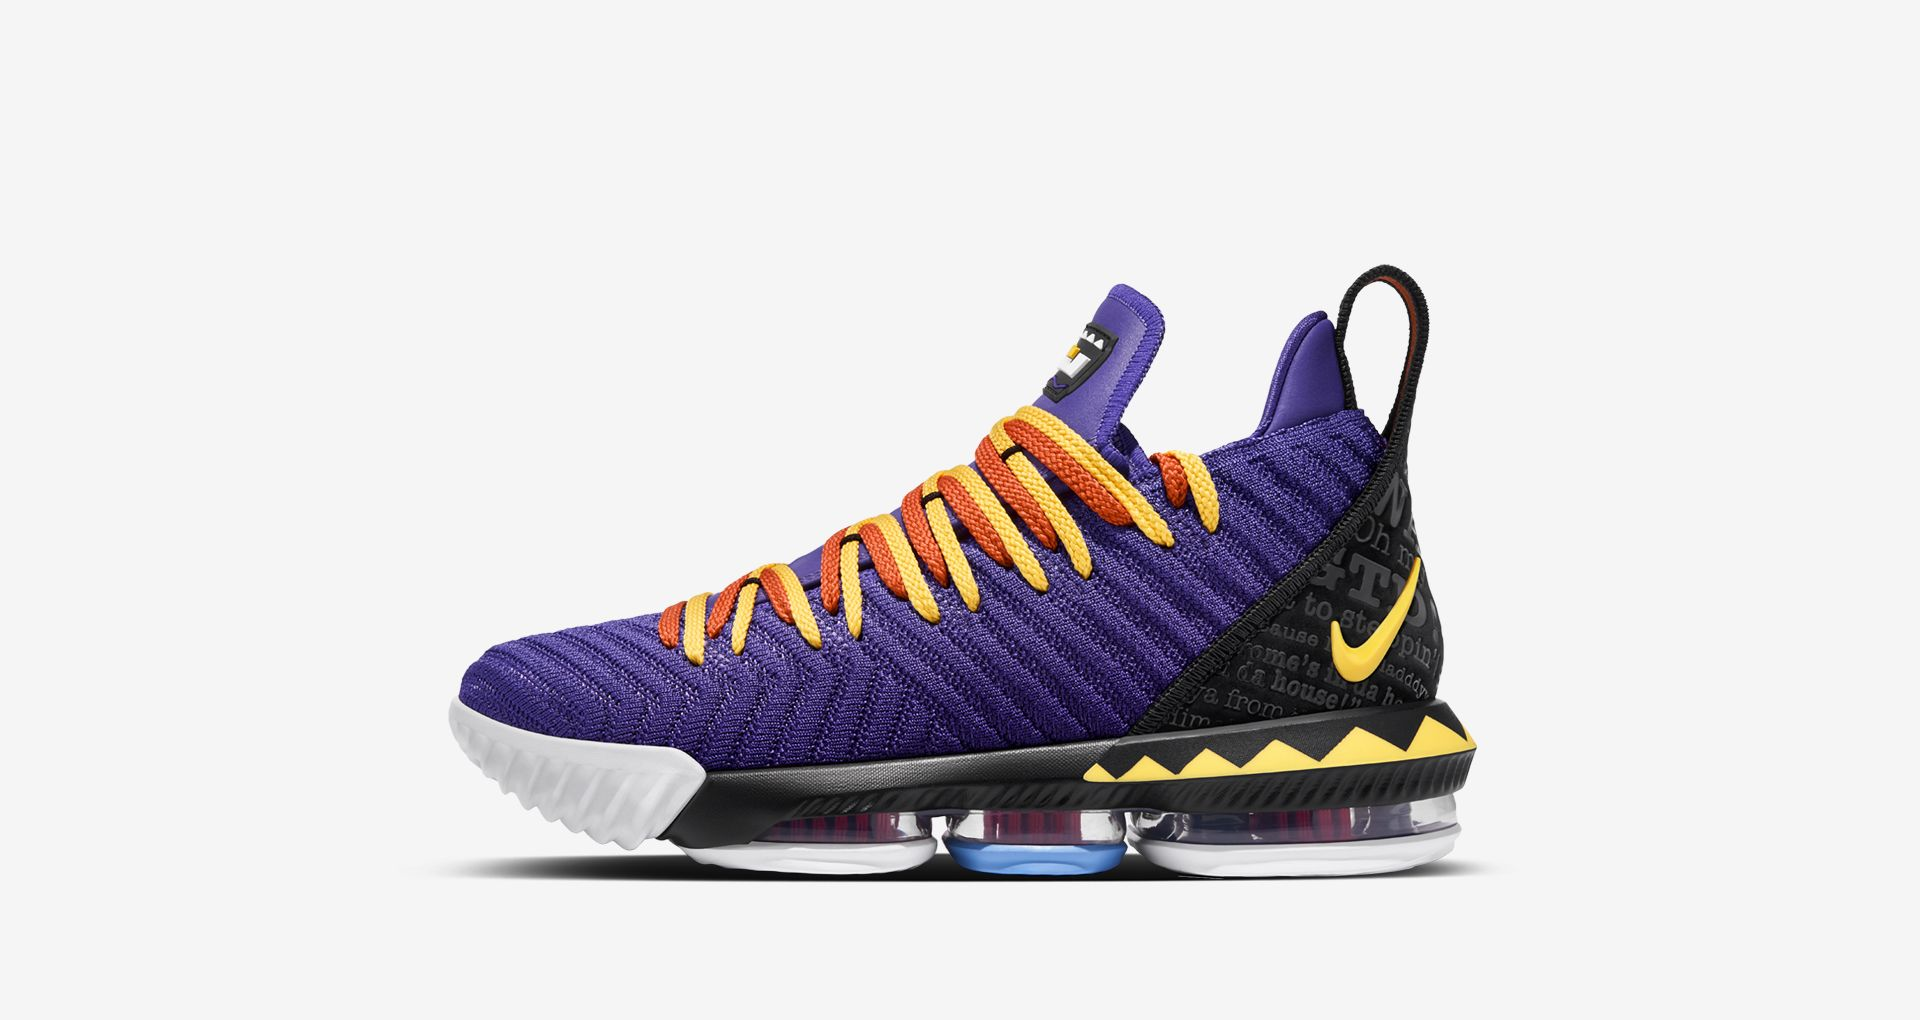 premium selection 31618 6ac19 LeBron 16 'Martin' Release Date. Nike+ SNKRS